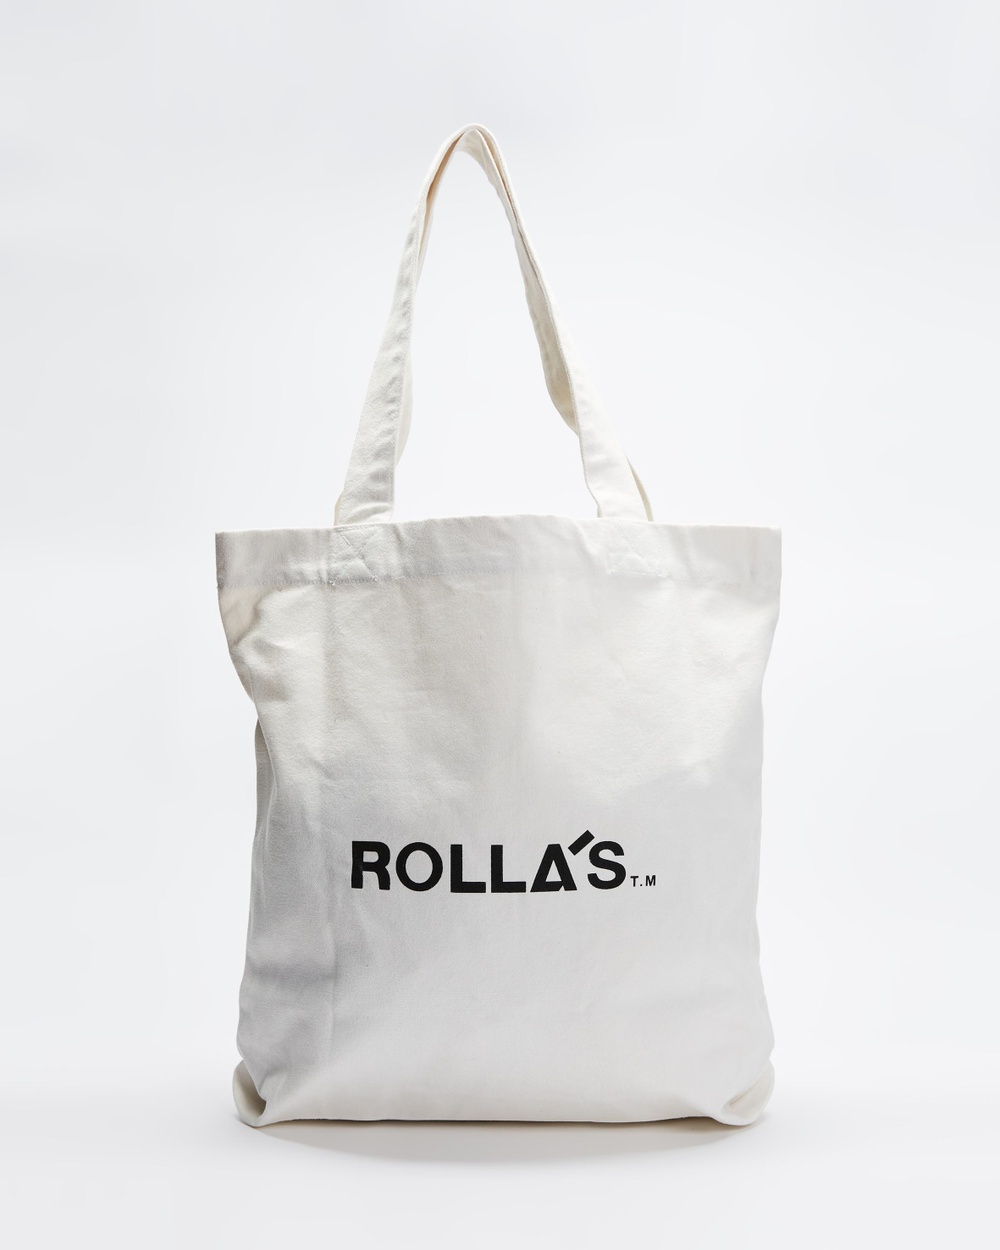 Rollas Rolling Stone 2020 Tote Bags Natural Australia